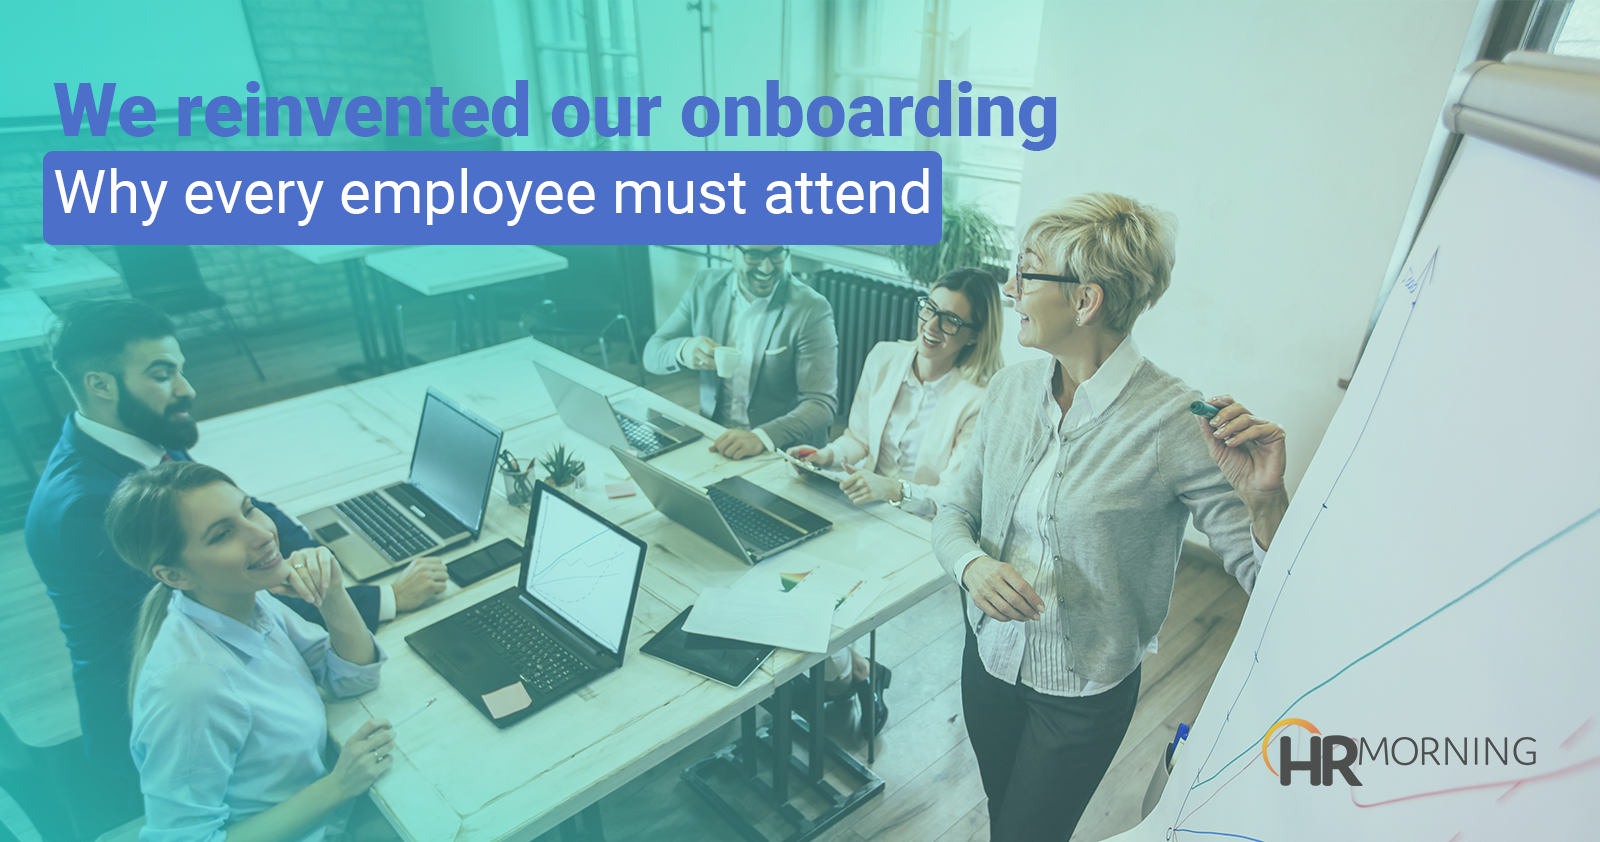 reinvented our onboarding program every employee must attend